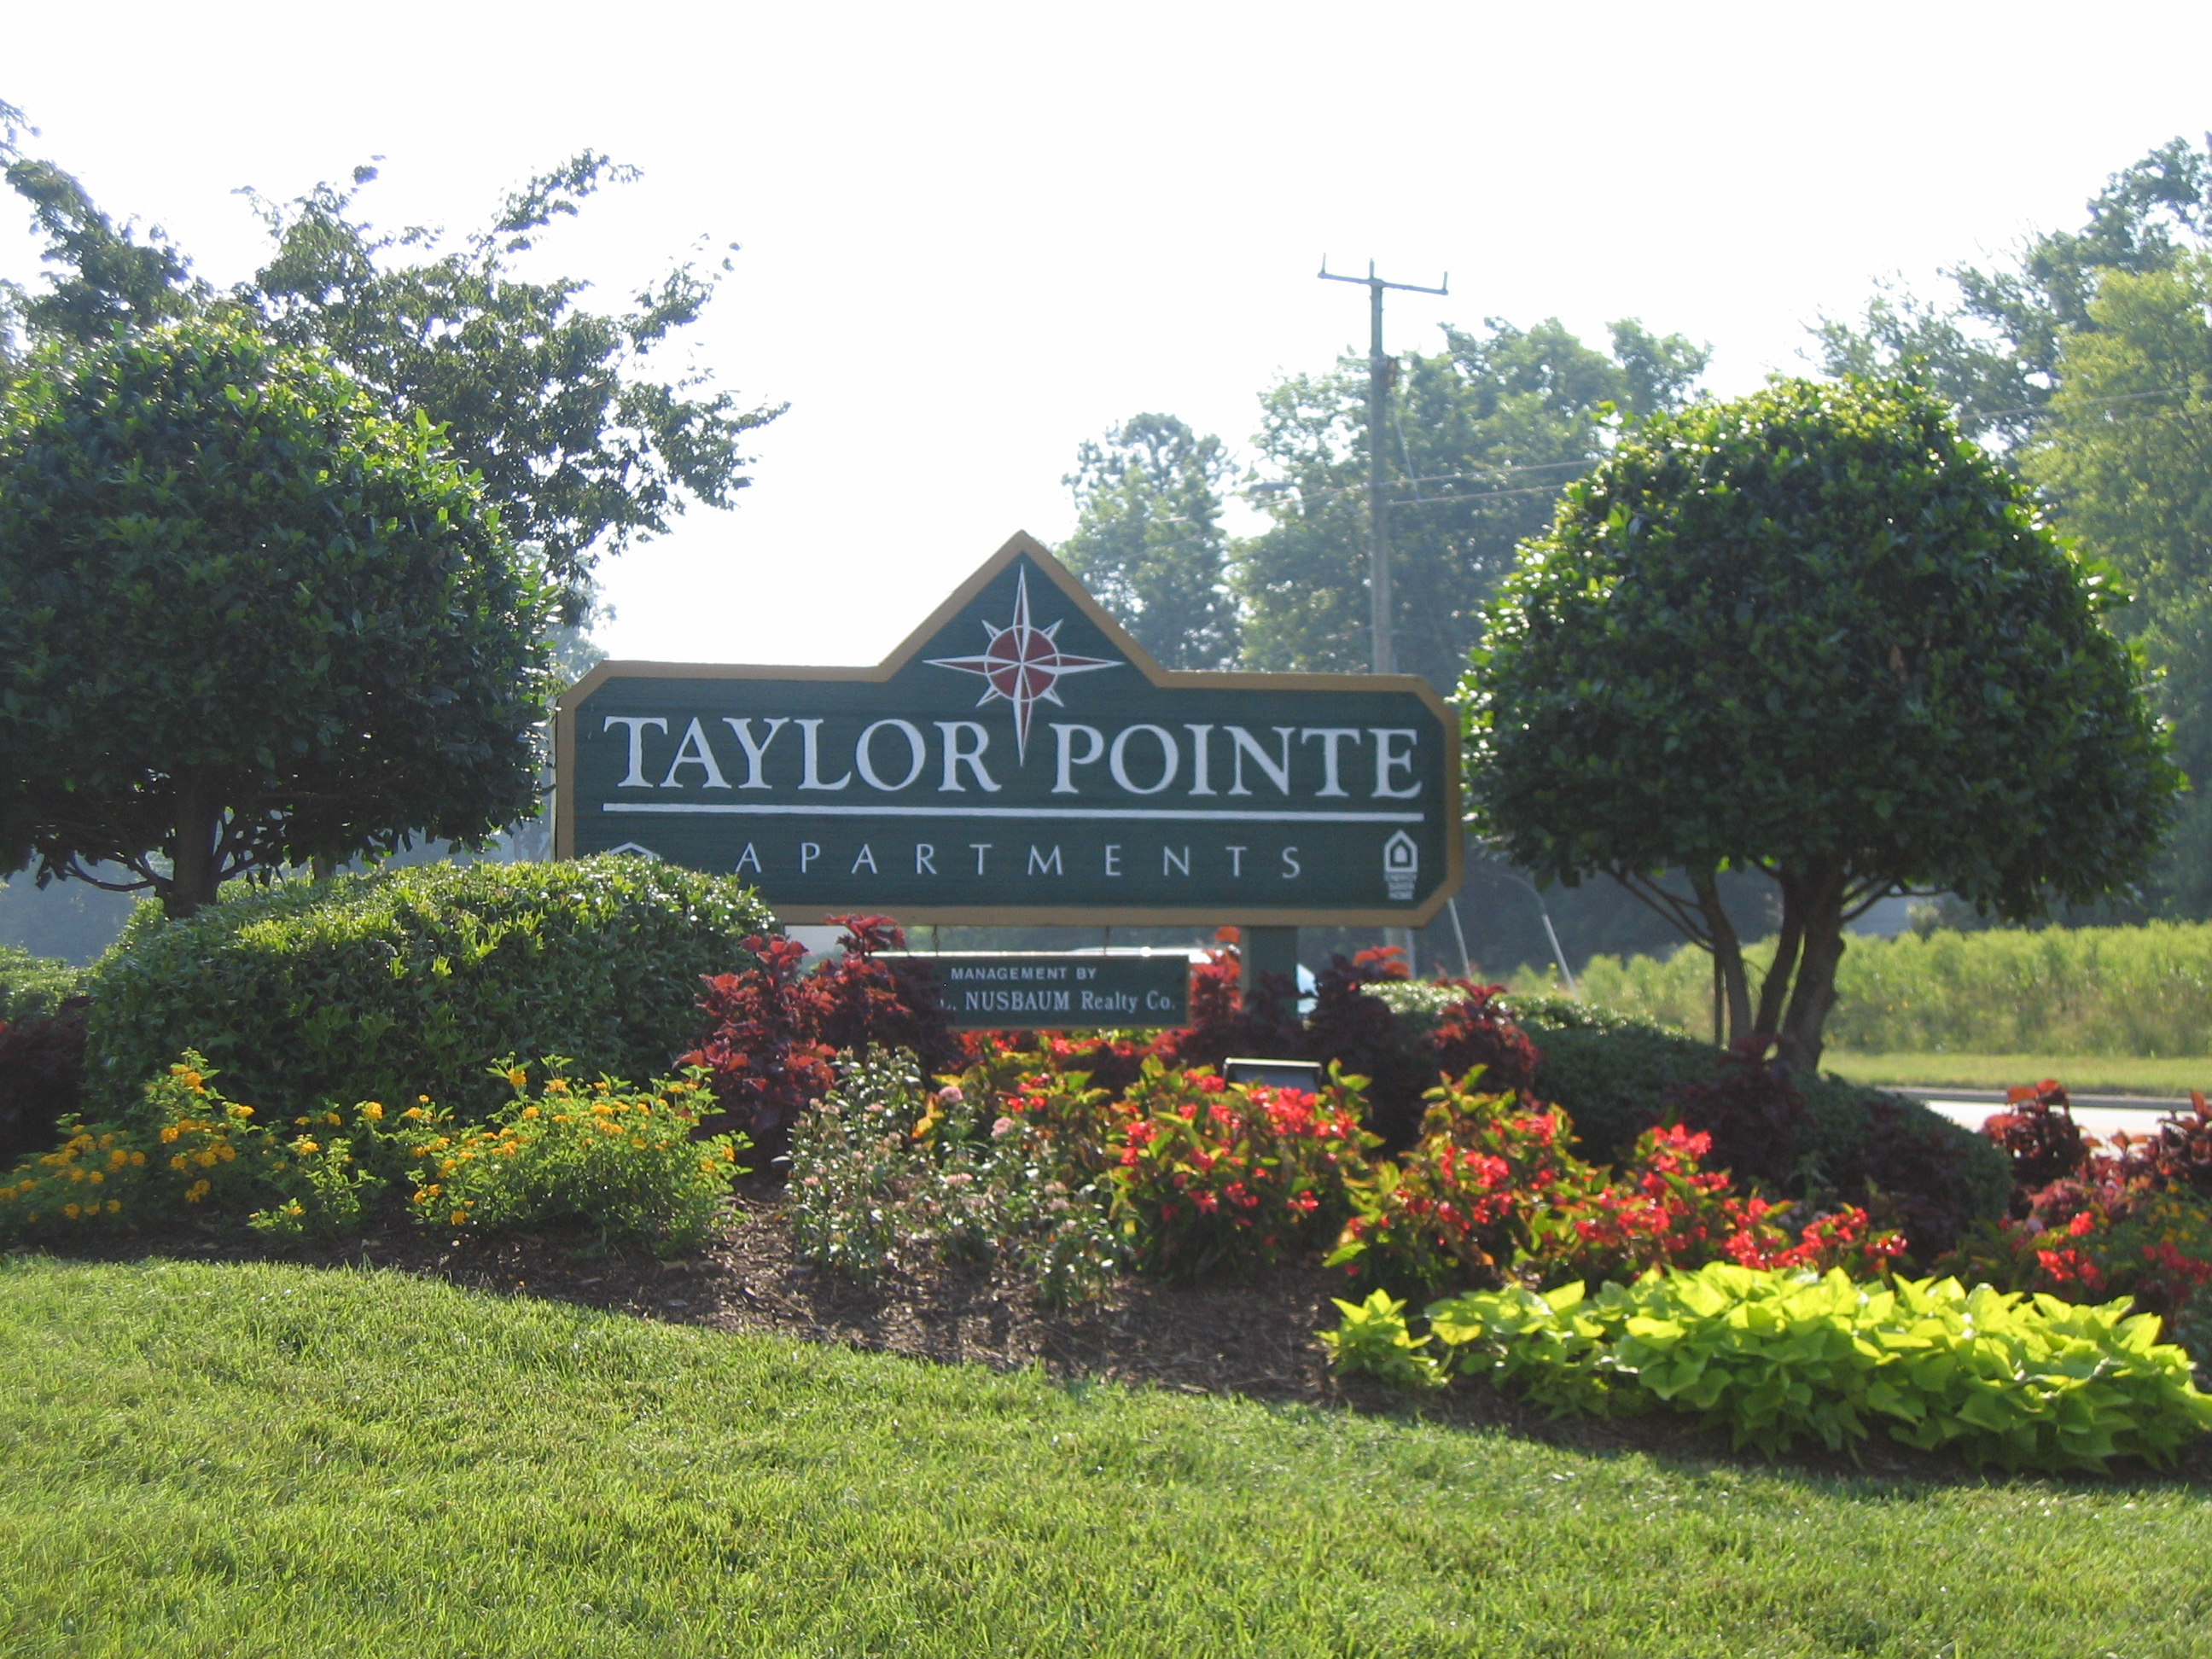 Taylor Pointe Apartments